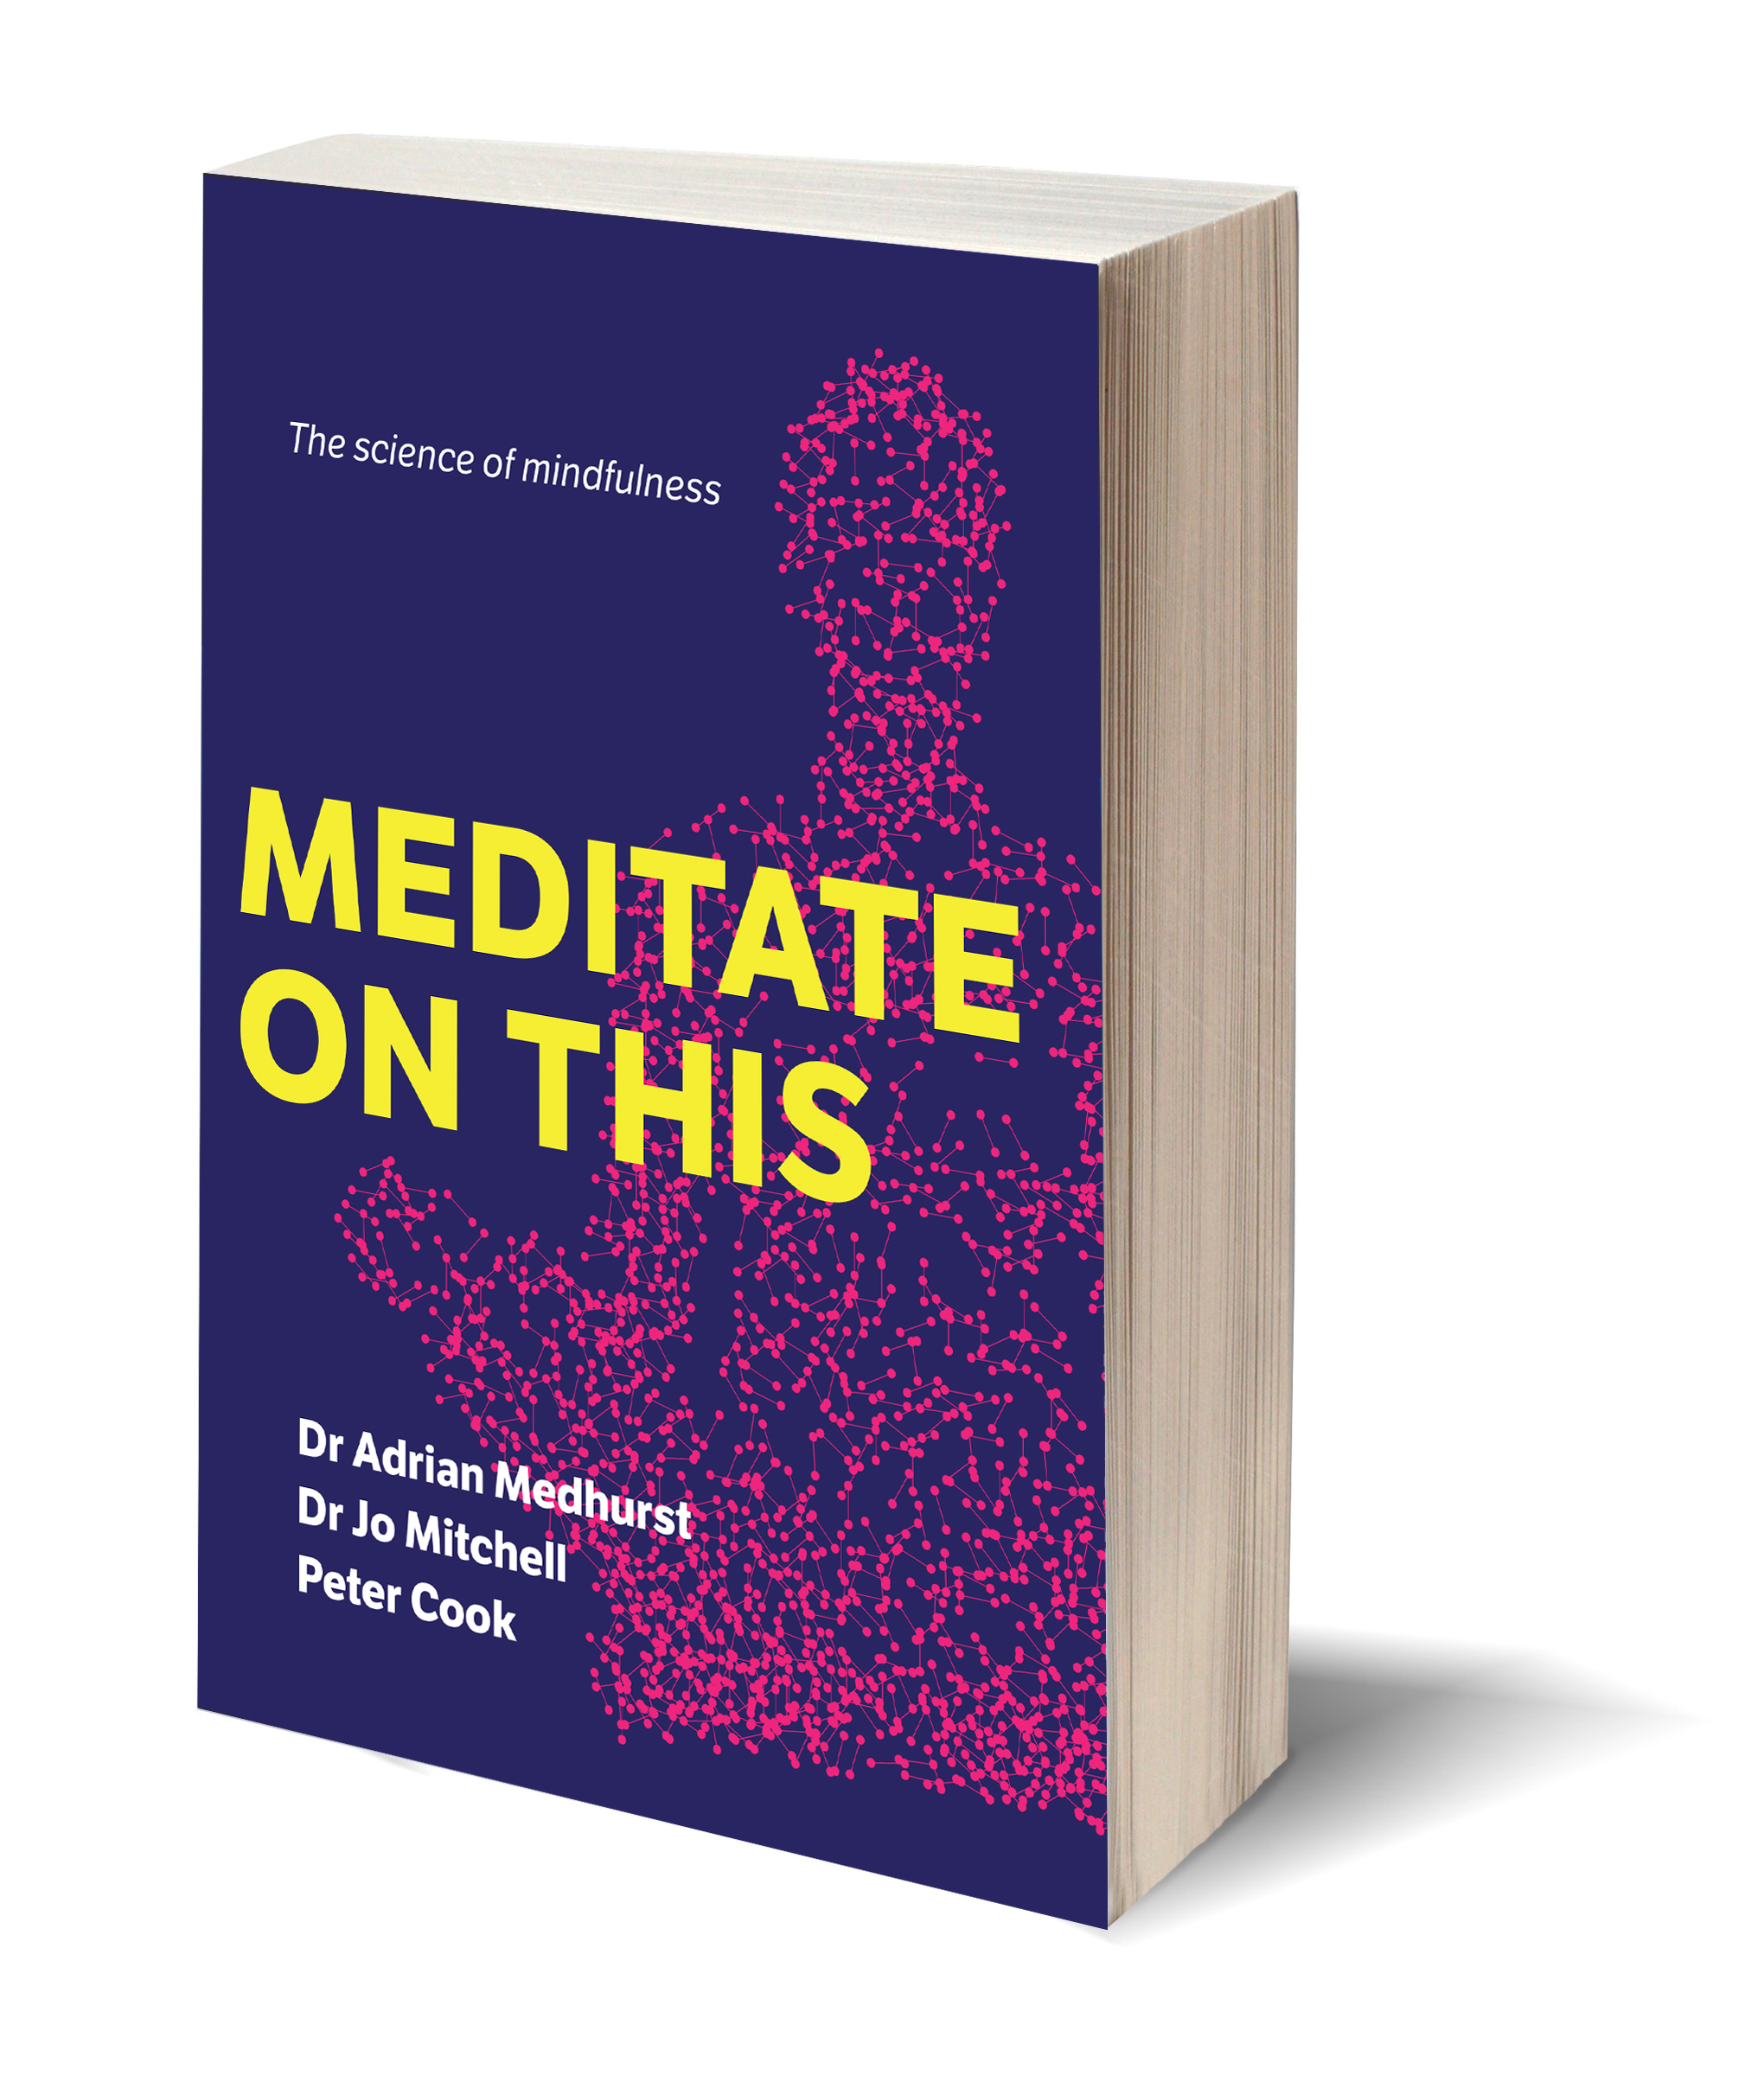 Meditate_on_this_cover_3d.jpg